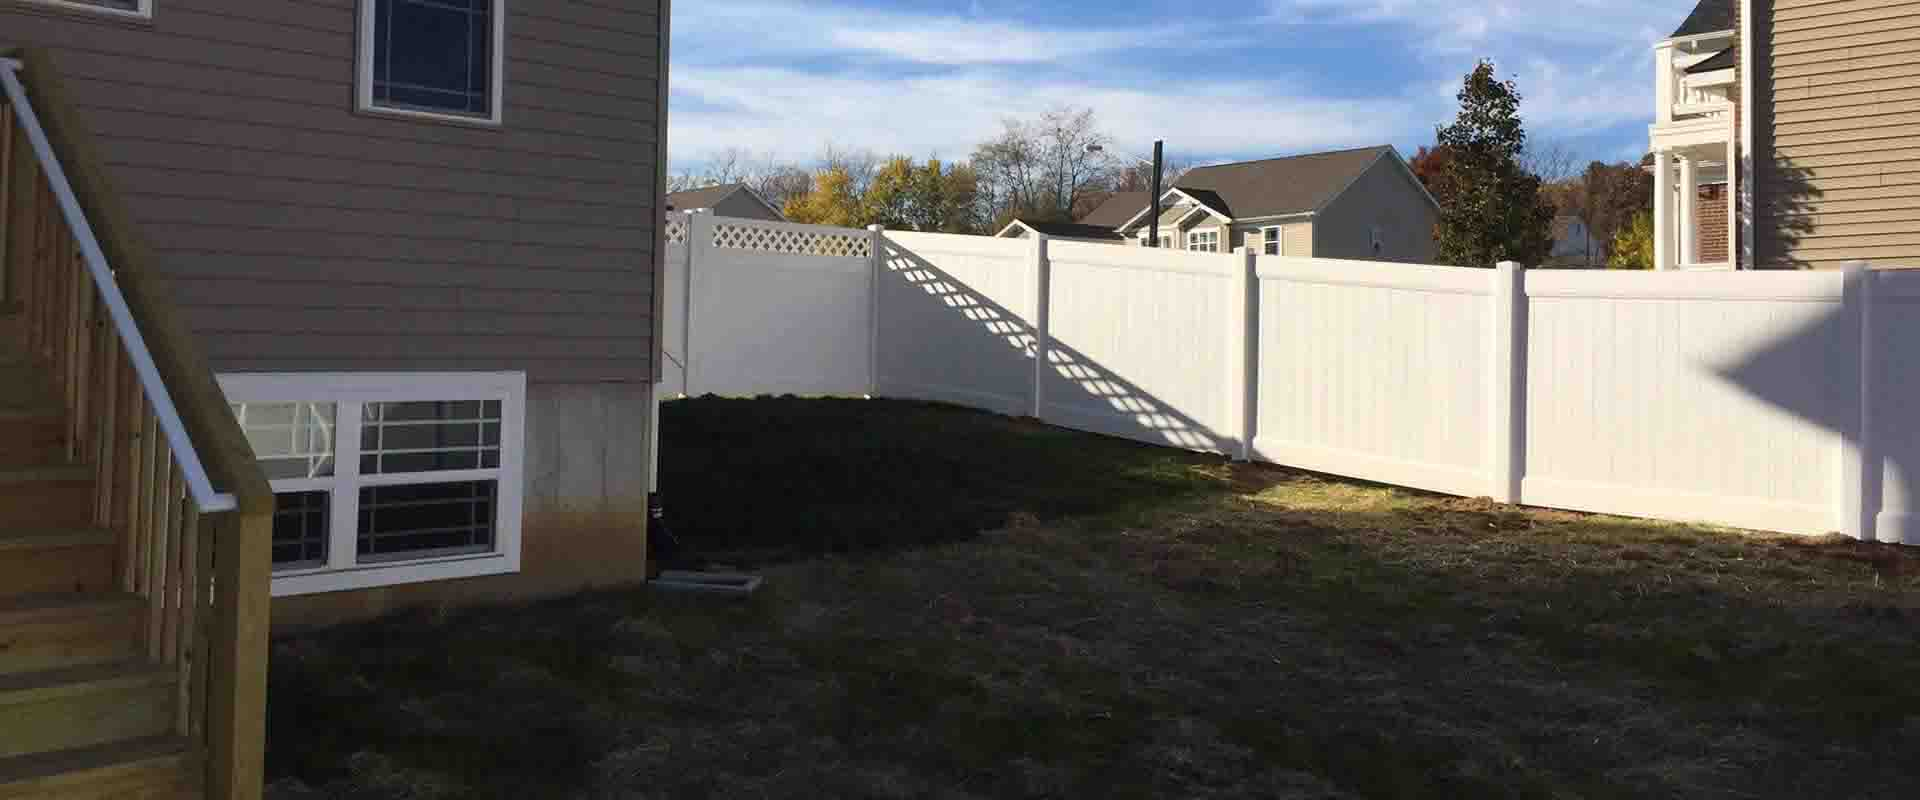 Fence Installation Company New Jersey